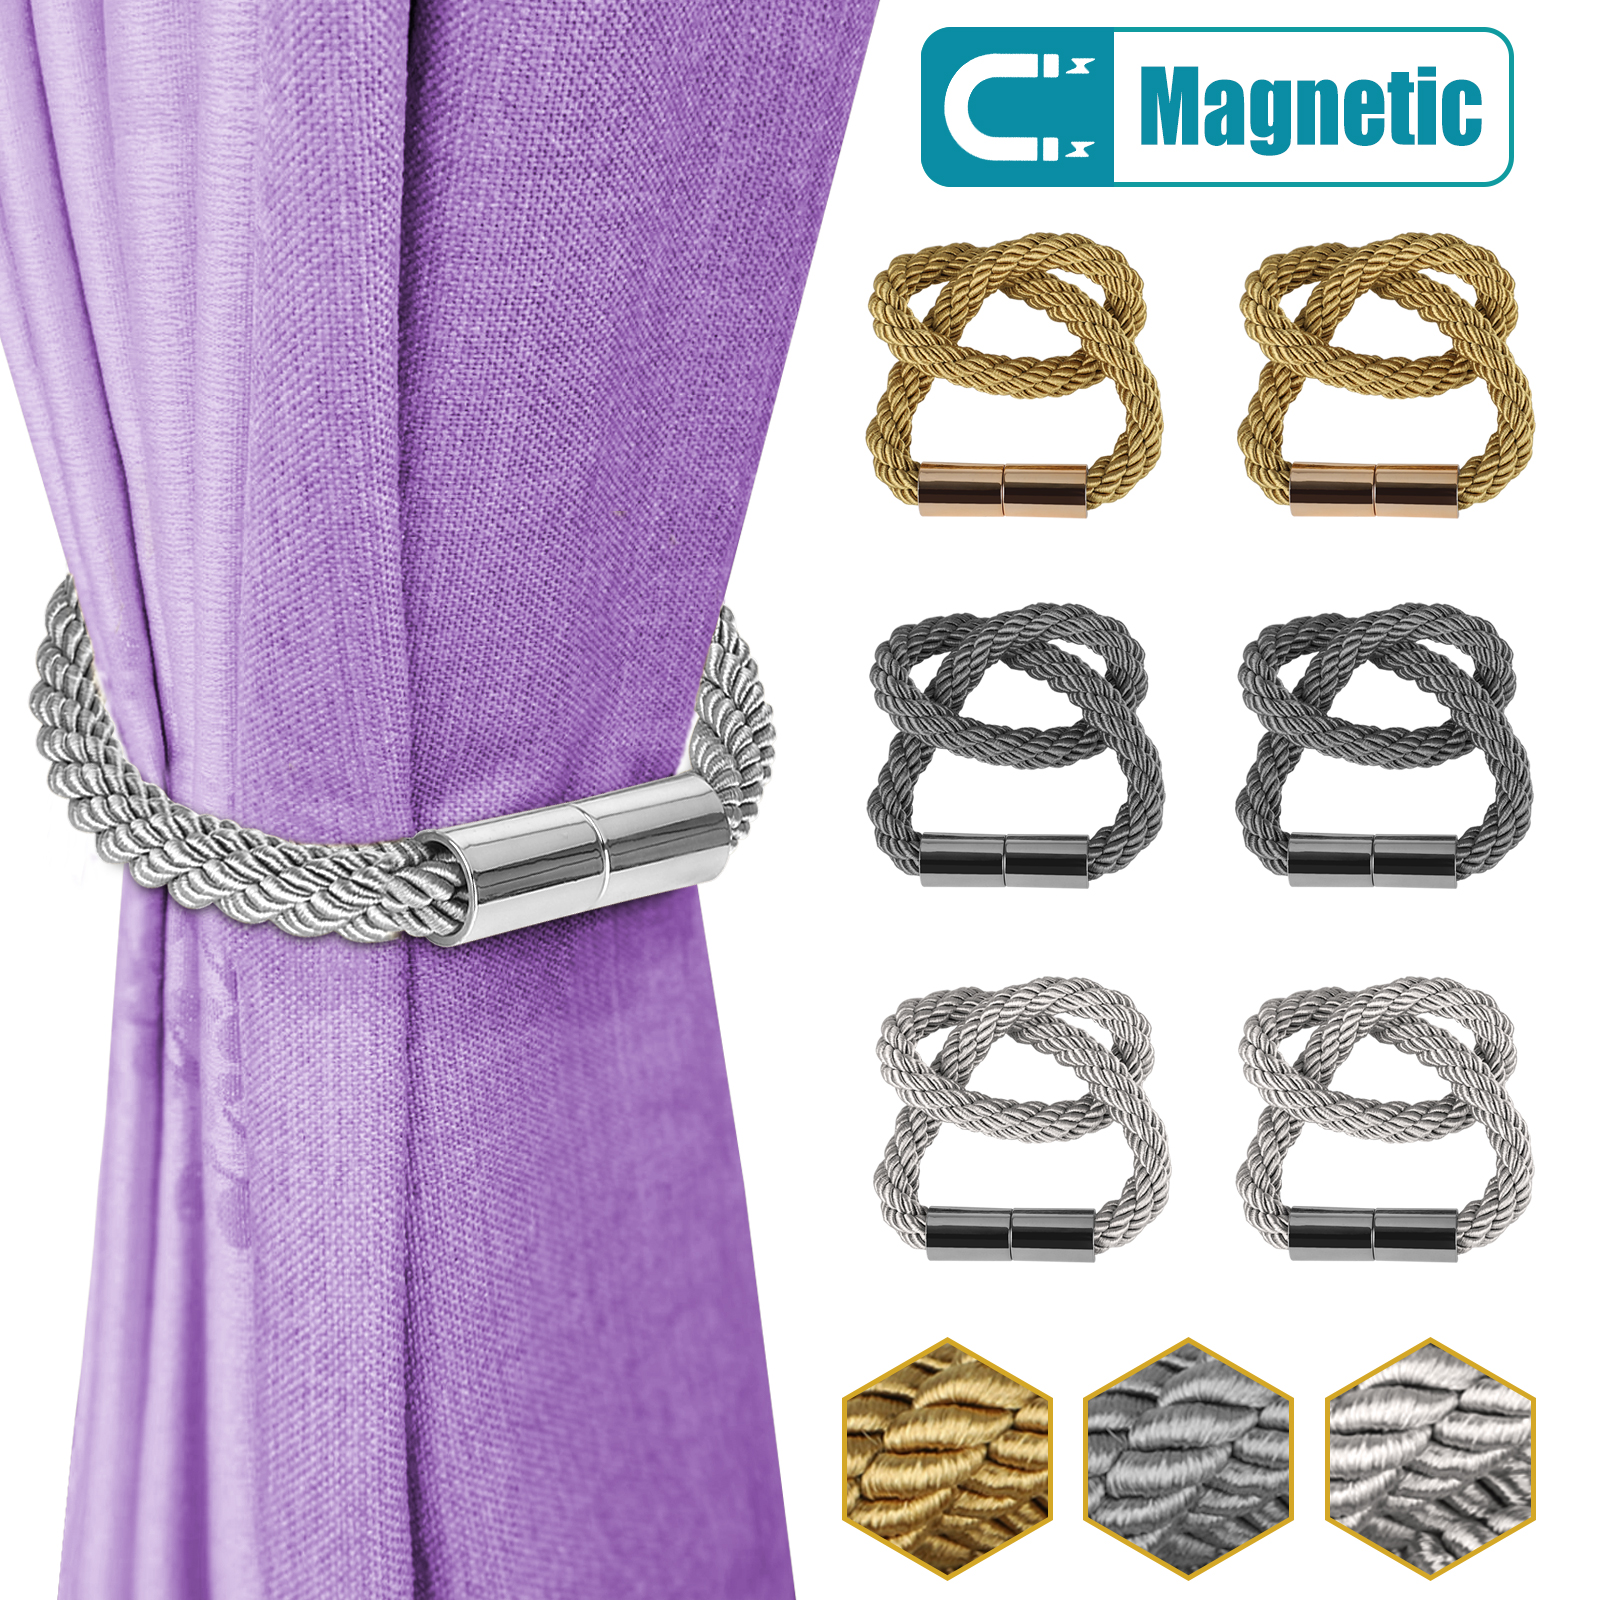 2 4 6 8pcs strong magnetic curtain